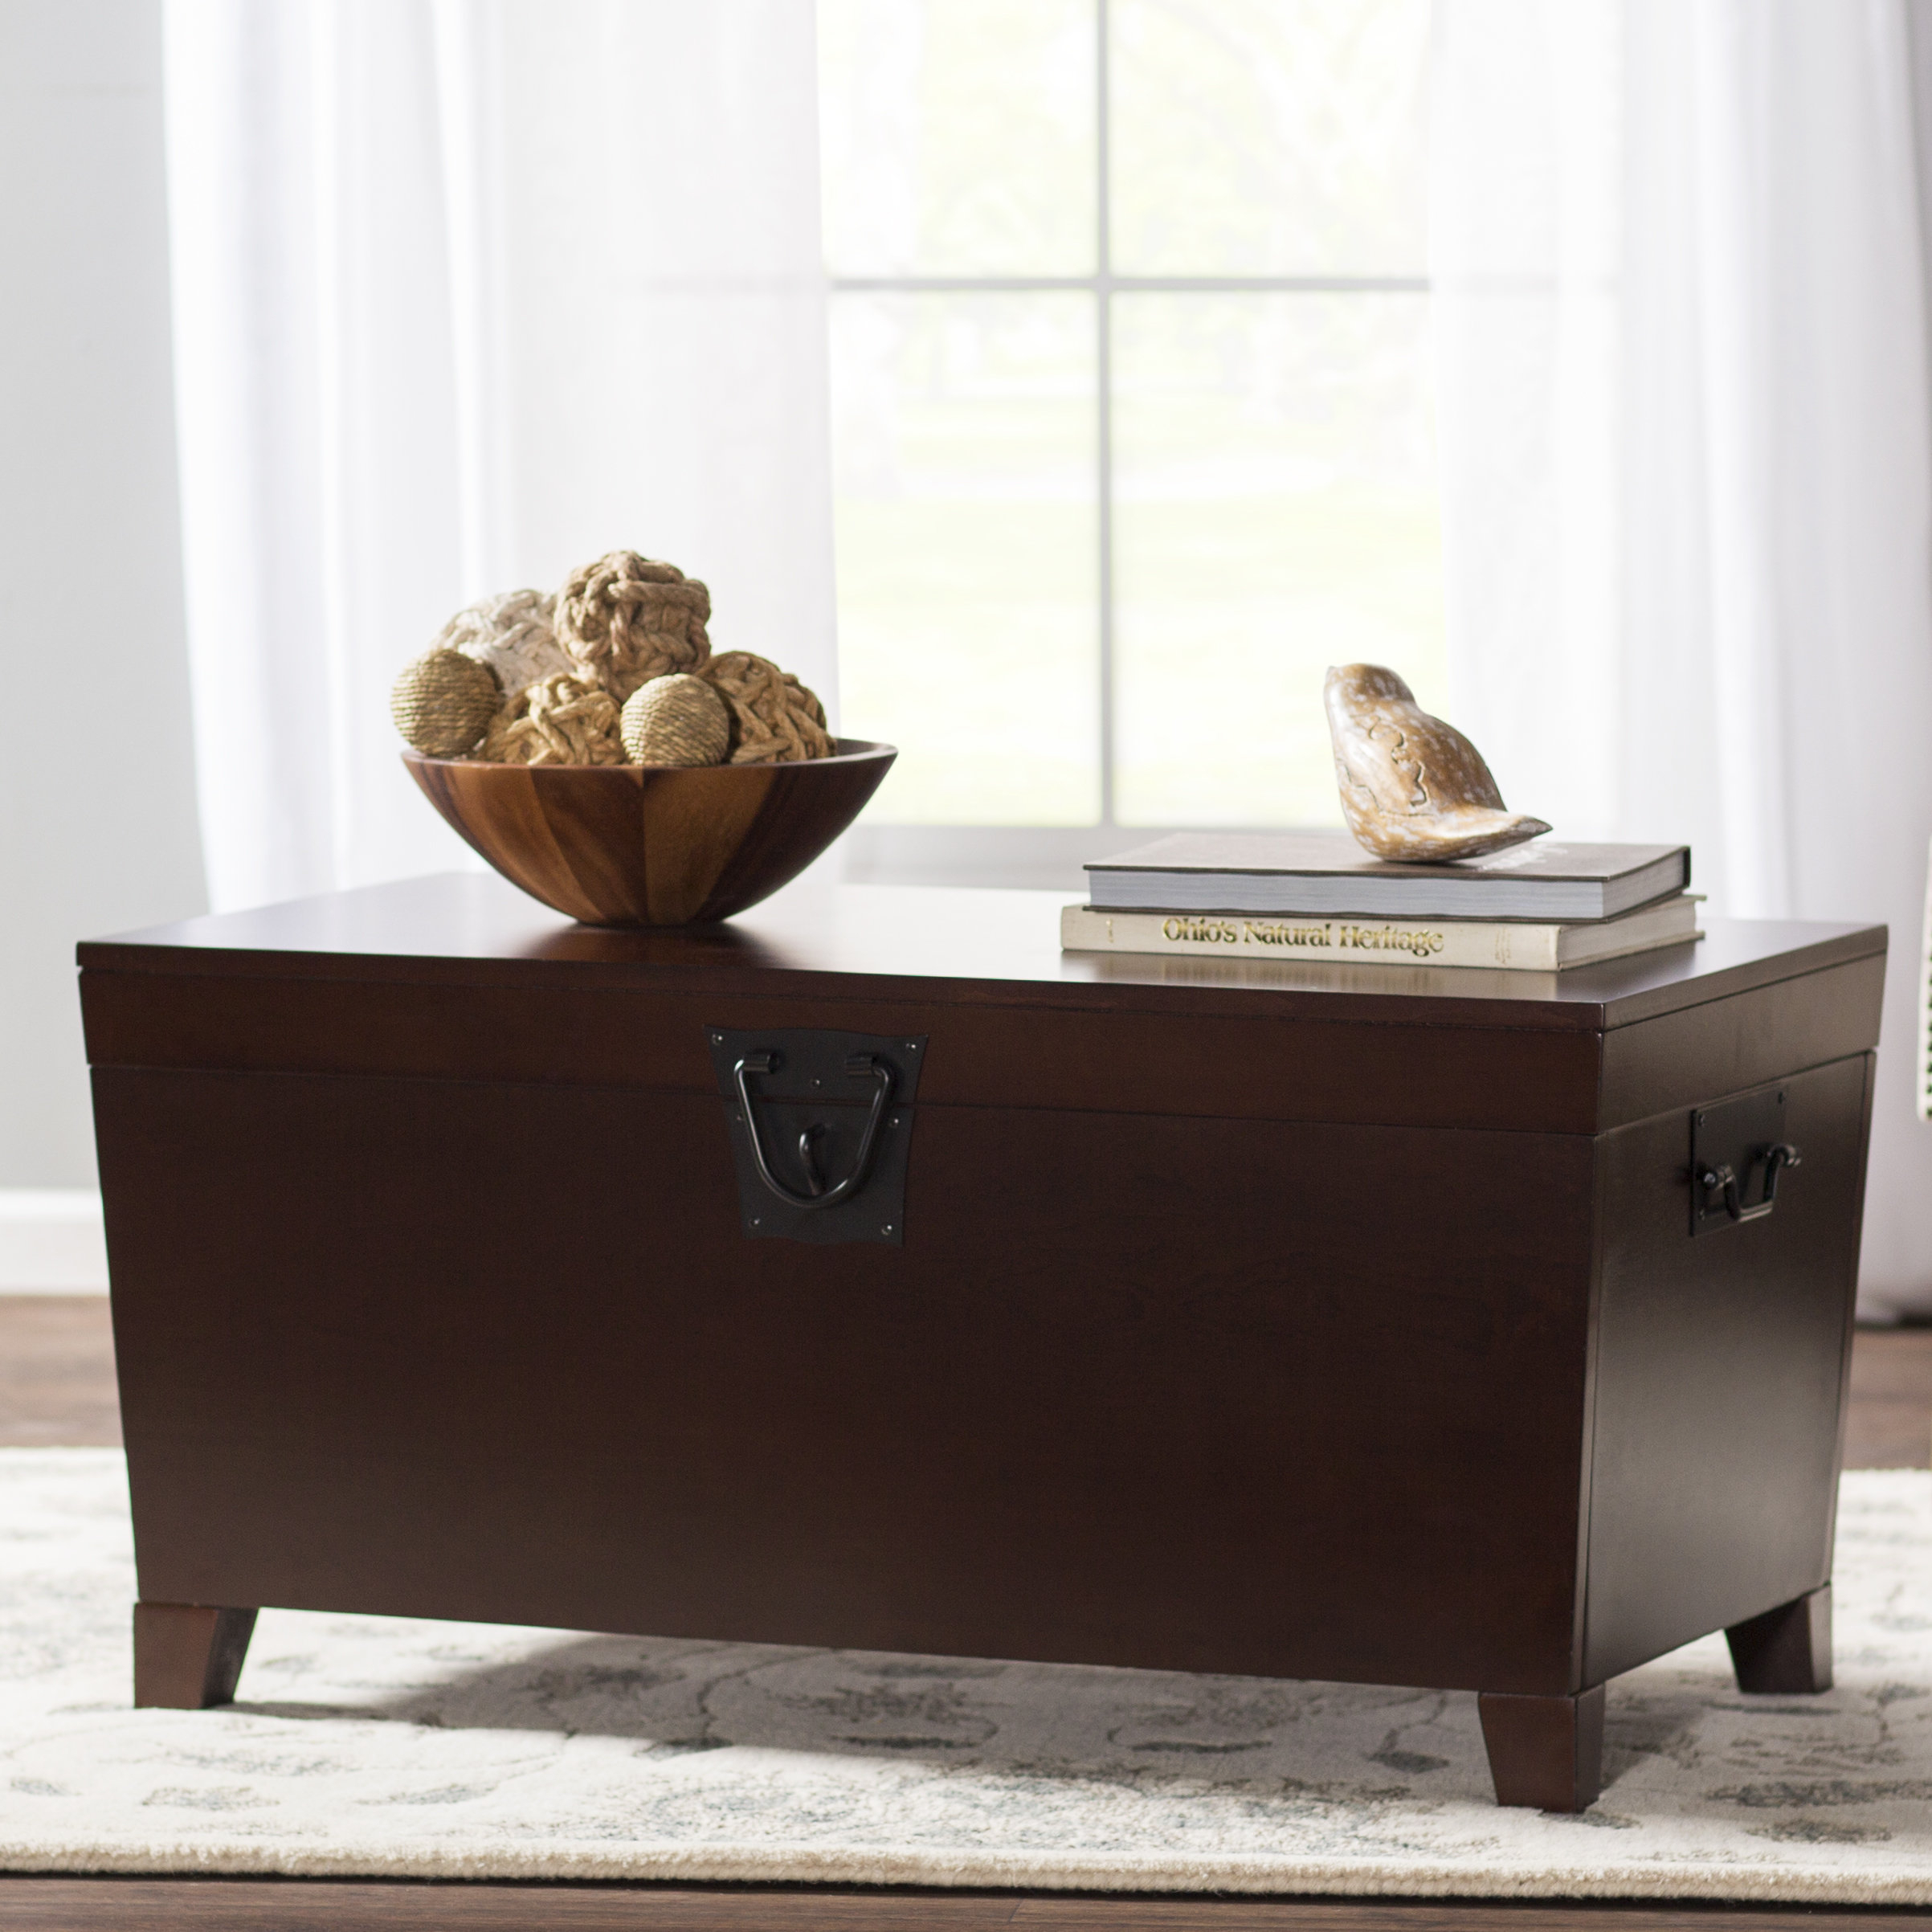 Toy Chest Coffee Table | Wayfair For Summer Desire Credenzas (View 24 of 30)